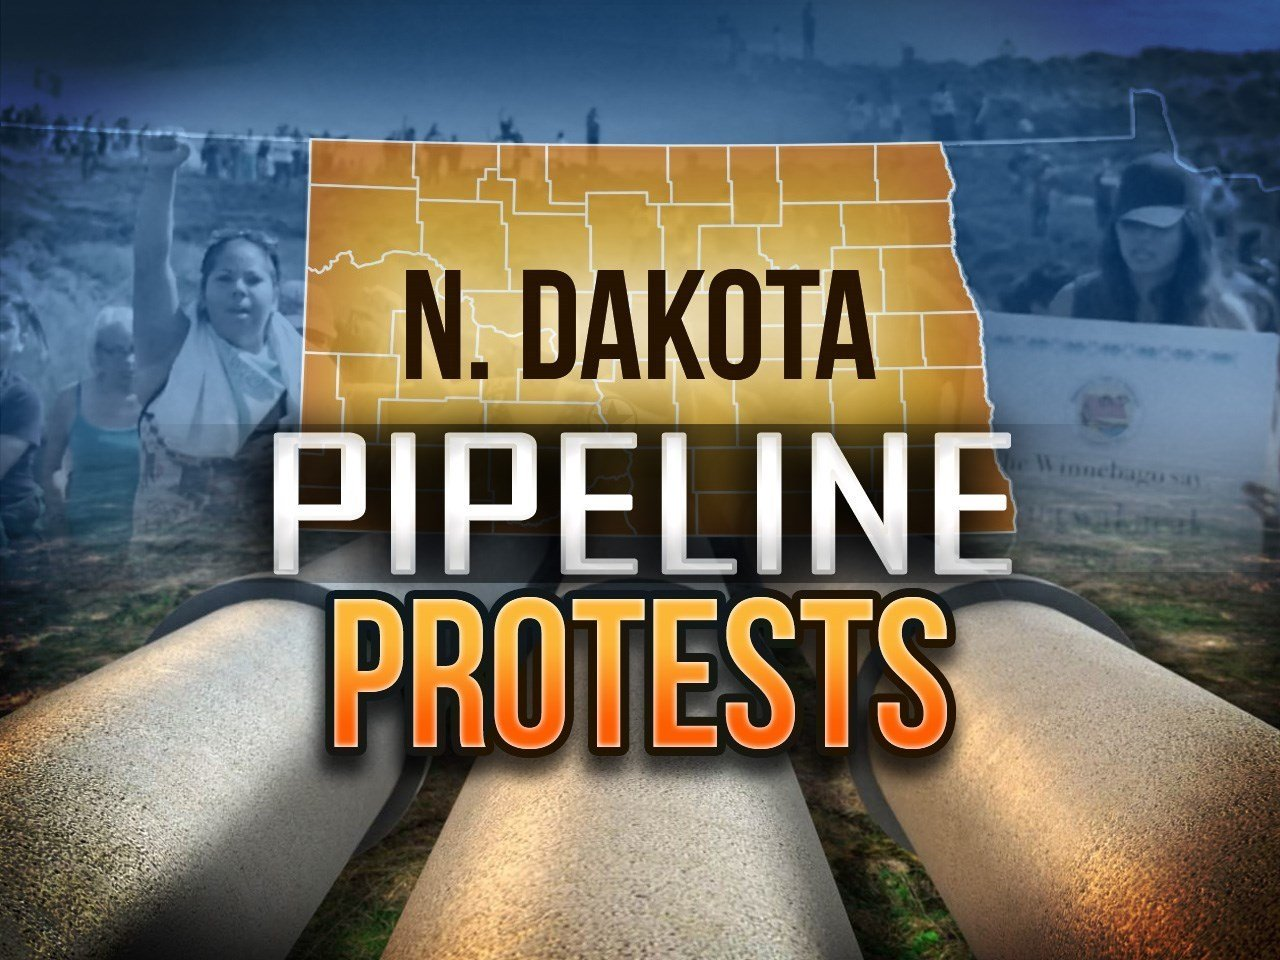 Donald Trump supports completion of Dakota Access Pipeline